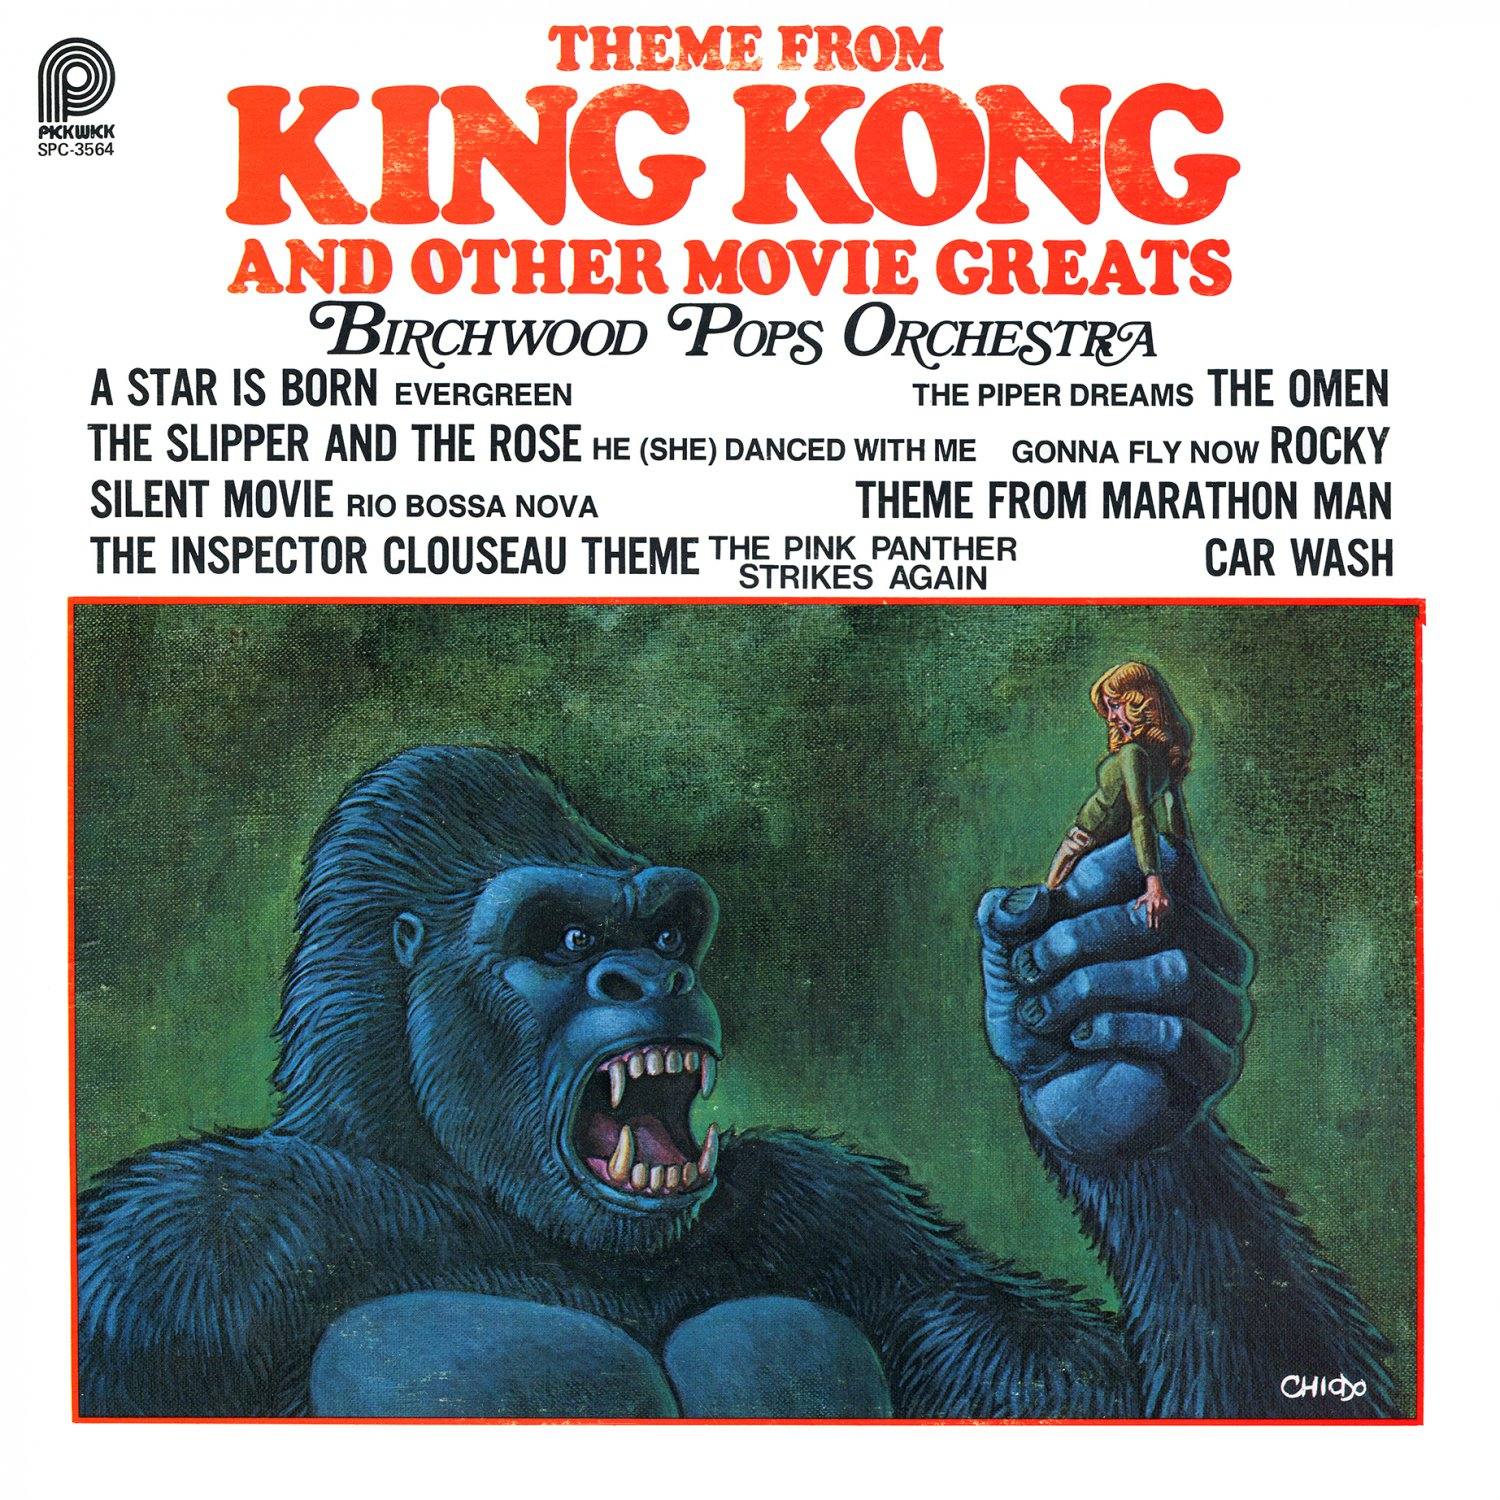 Theme from King Kong and Other Movie Greats - Soundtrack Collection, Birchwood Pops LP/CD